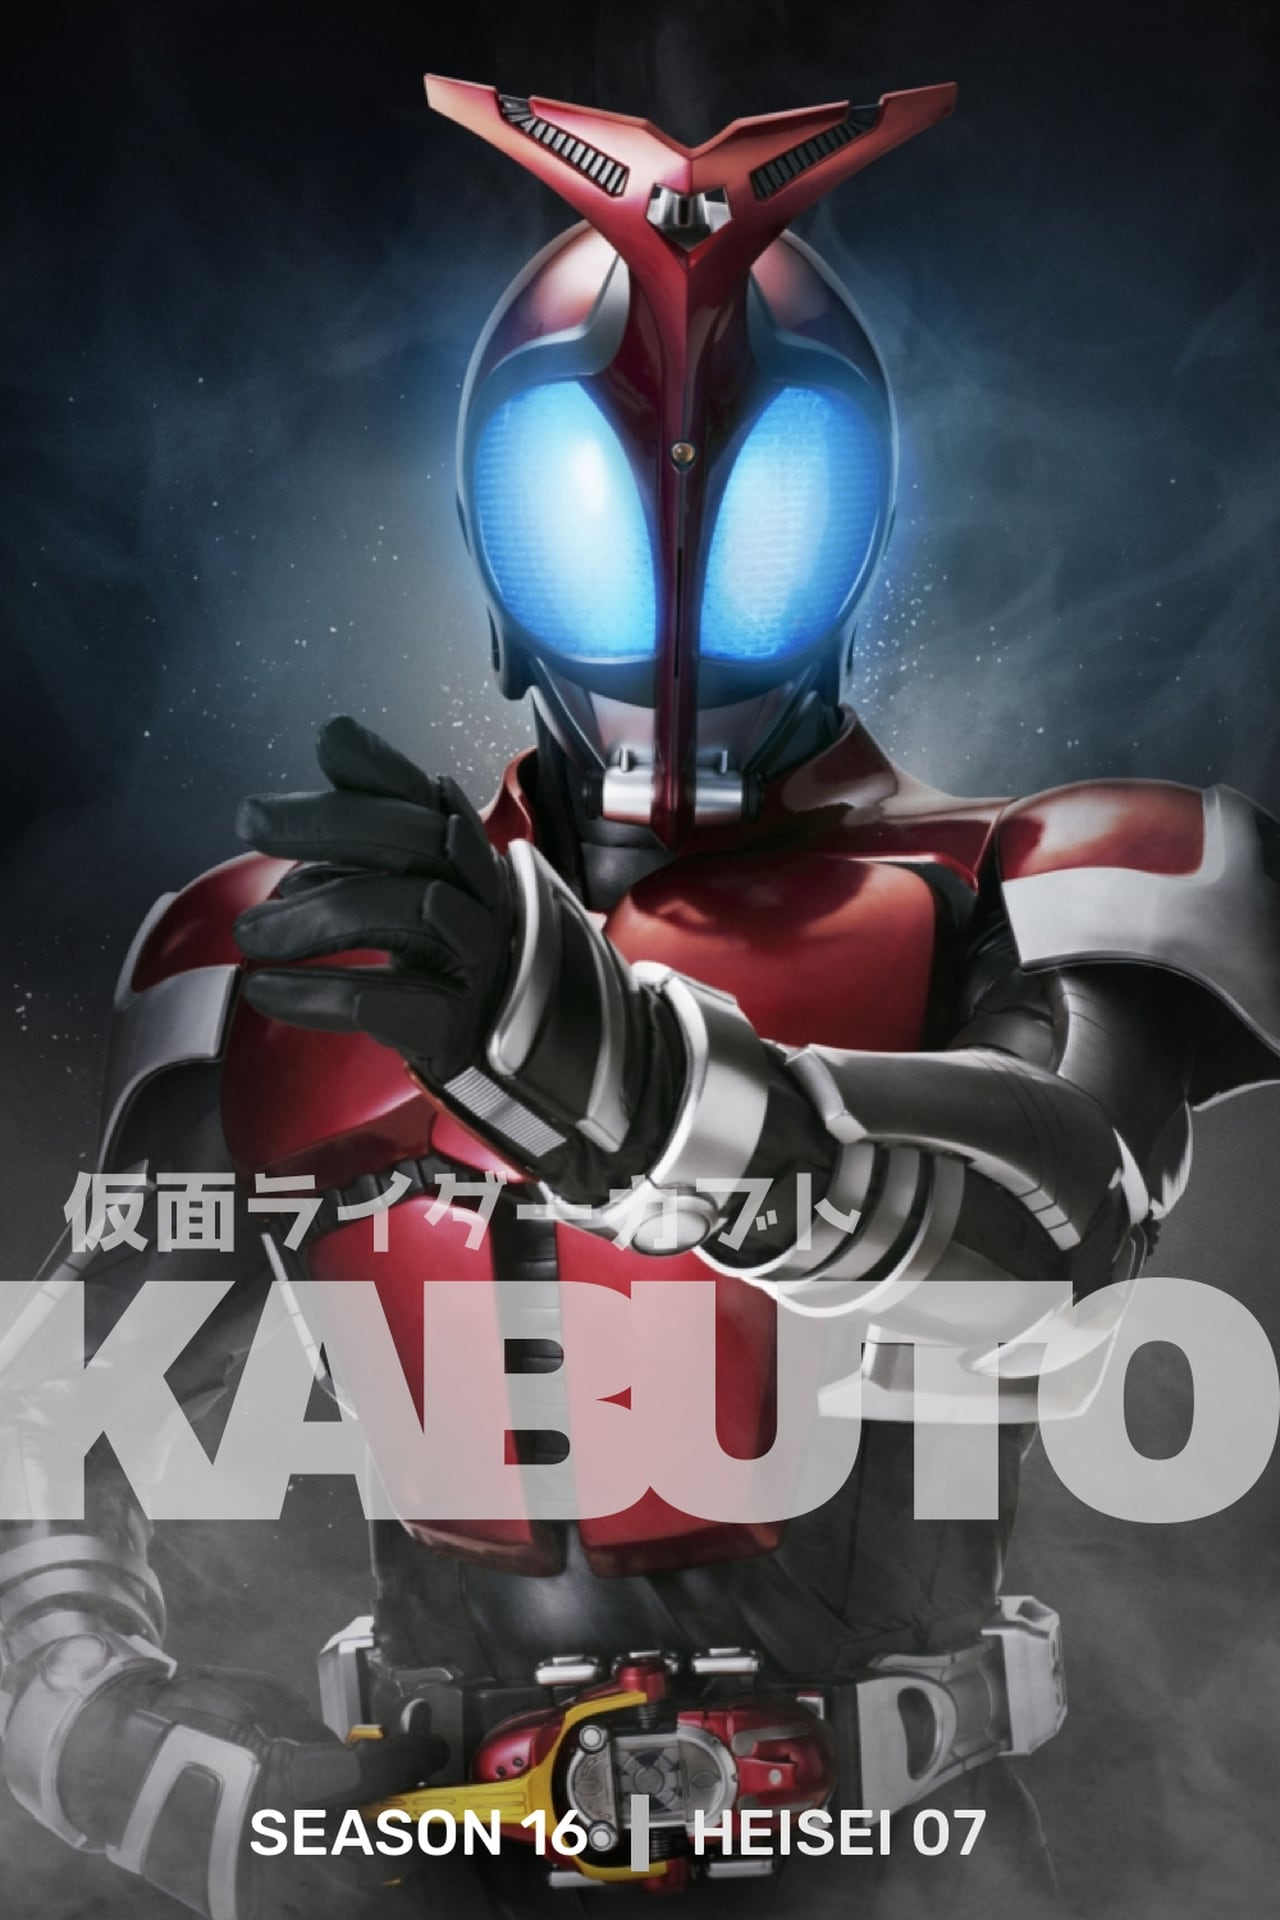 Watch Kamen Rider Season 16 Online